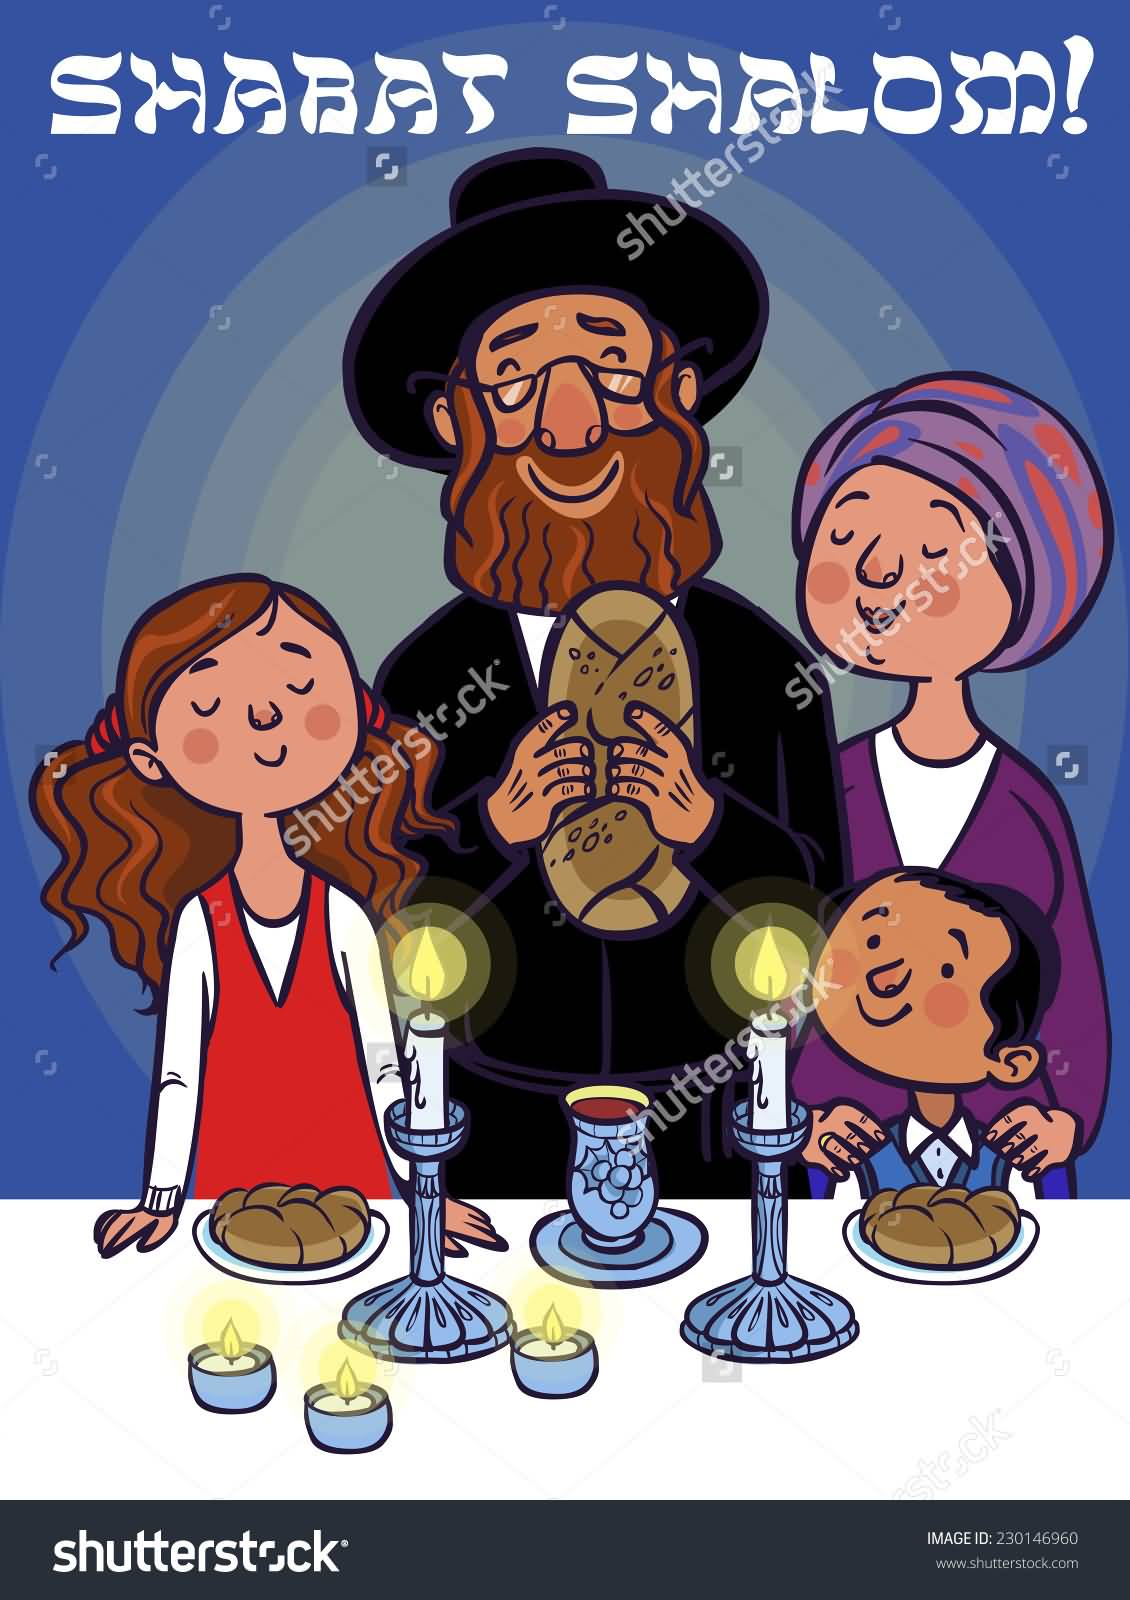 Jewish-Family-Celebrating-Shabbat-Shalom